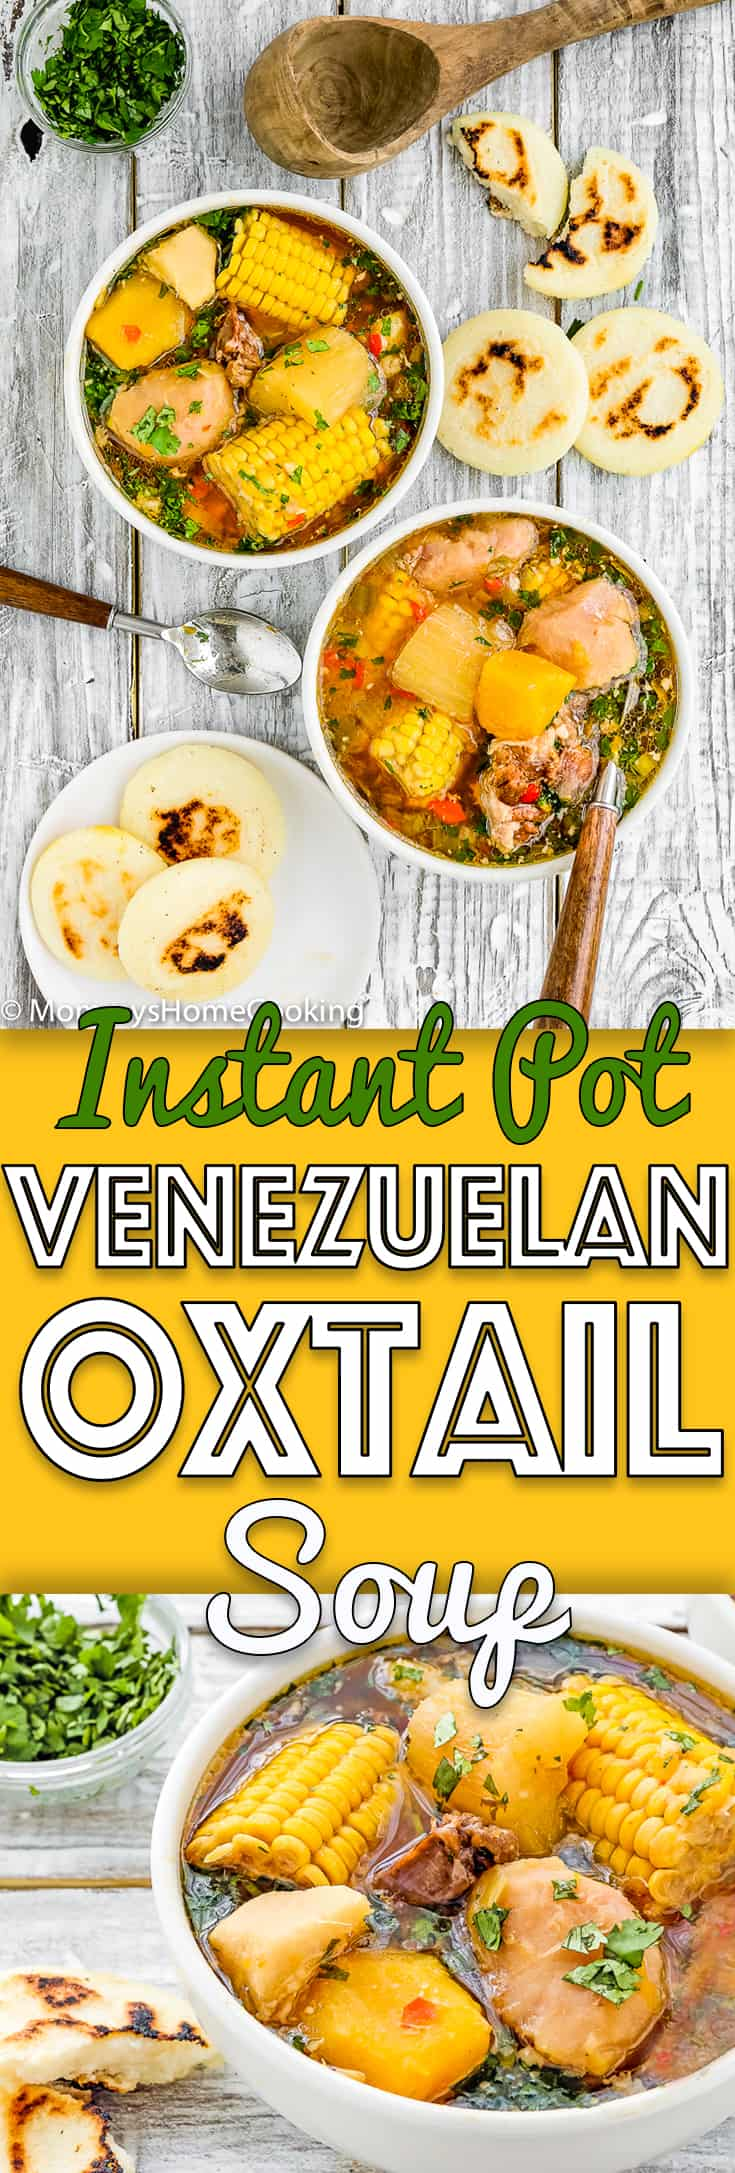 2 bowls with Venezuelan Oxtail Soup and arepas with descriptive text